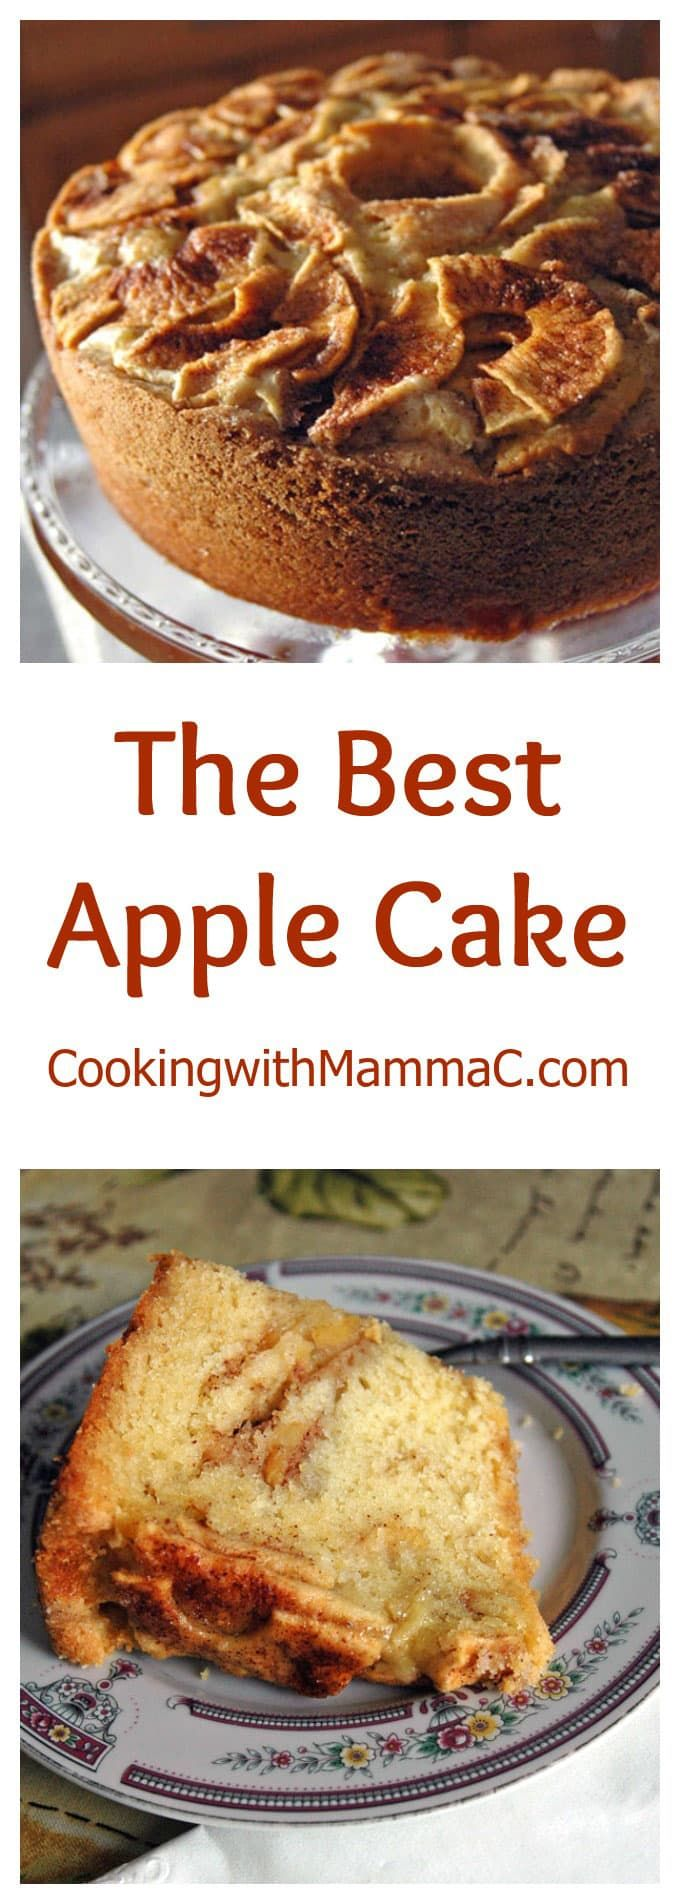 This is The Best Apple Cake and also the best dessert to ever come out of my kitchen! I've made it at least 60 times over the years! Parve.